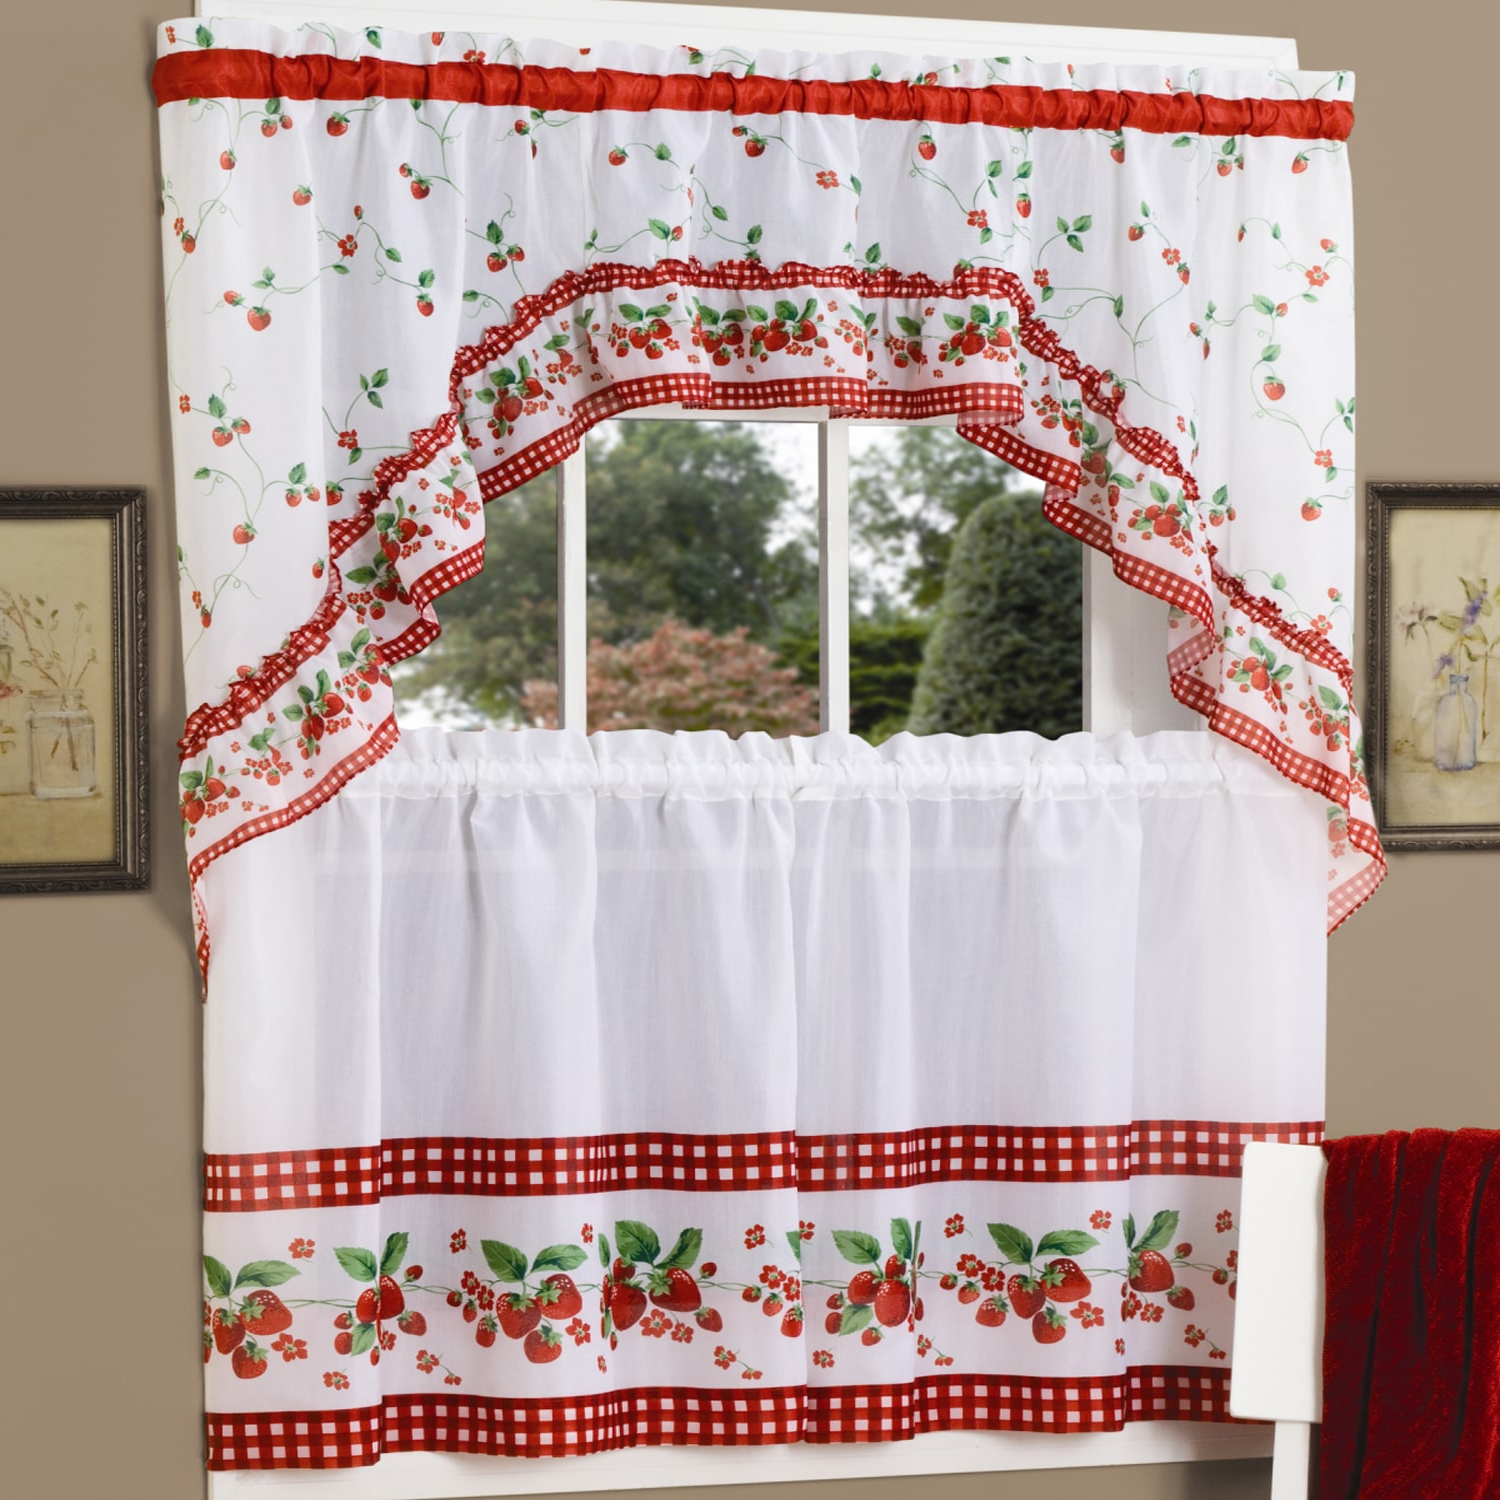 Traditional Two Piece Tailored Tier And Valance Window Curtains Throughout Latest Traditional Two Piece Tailored Tier And Swag Window Curtains (View 12 of 20)